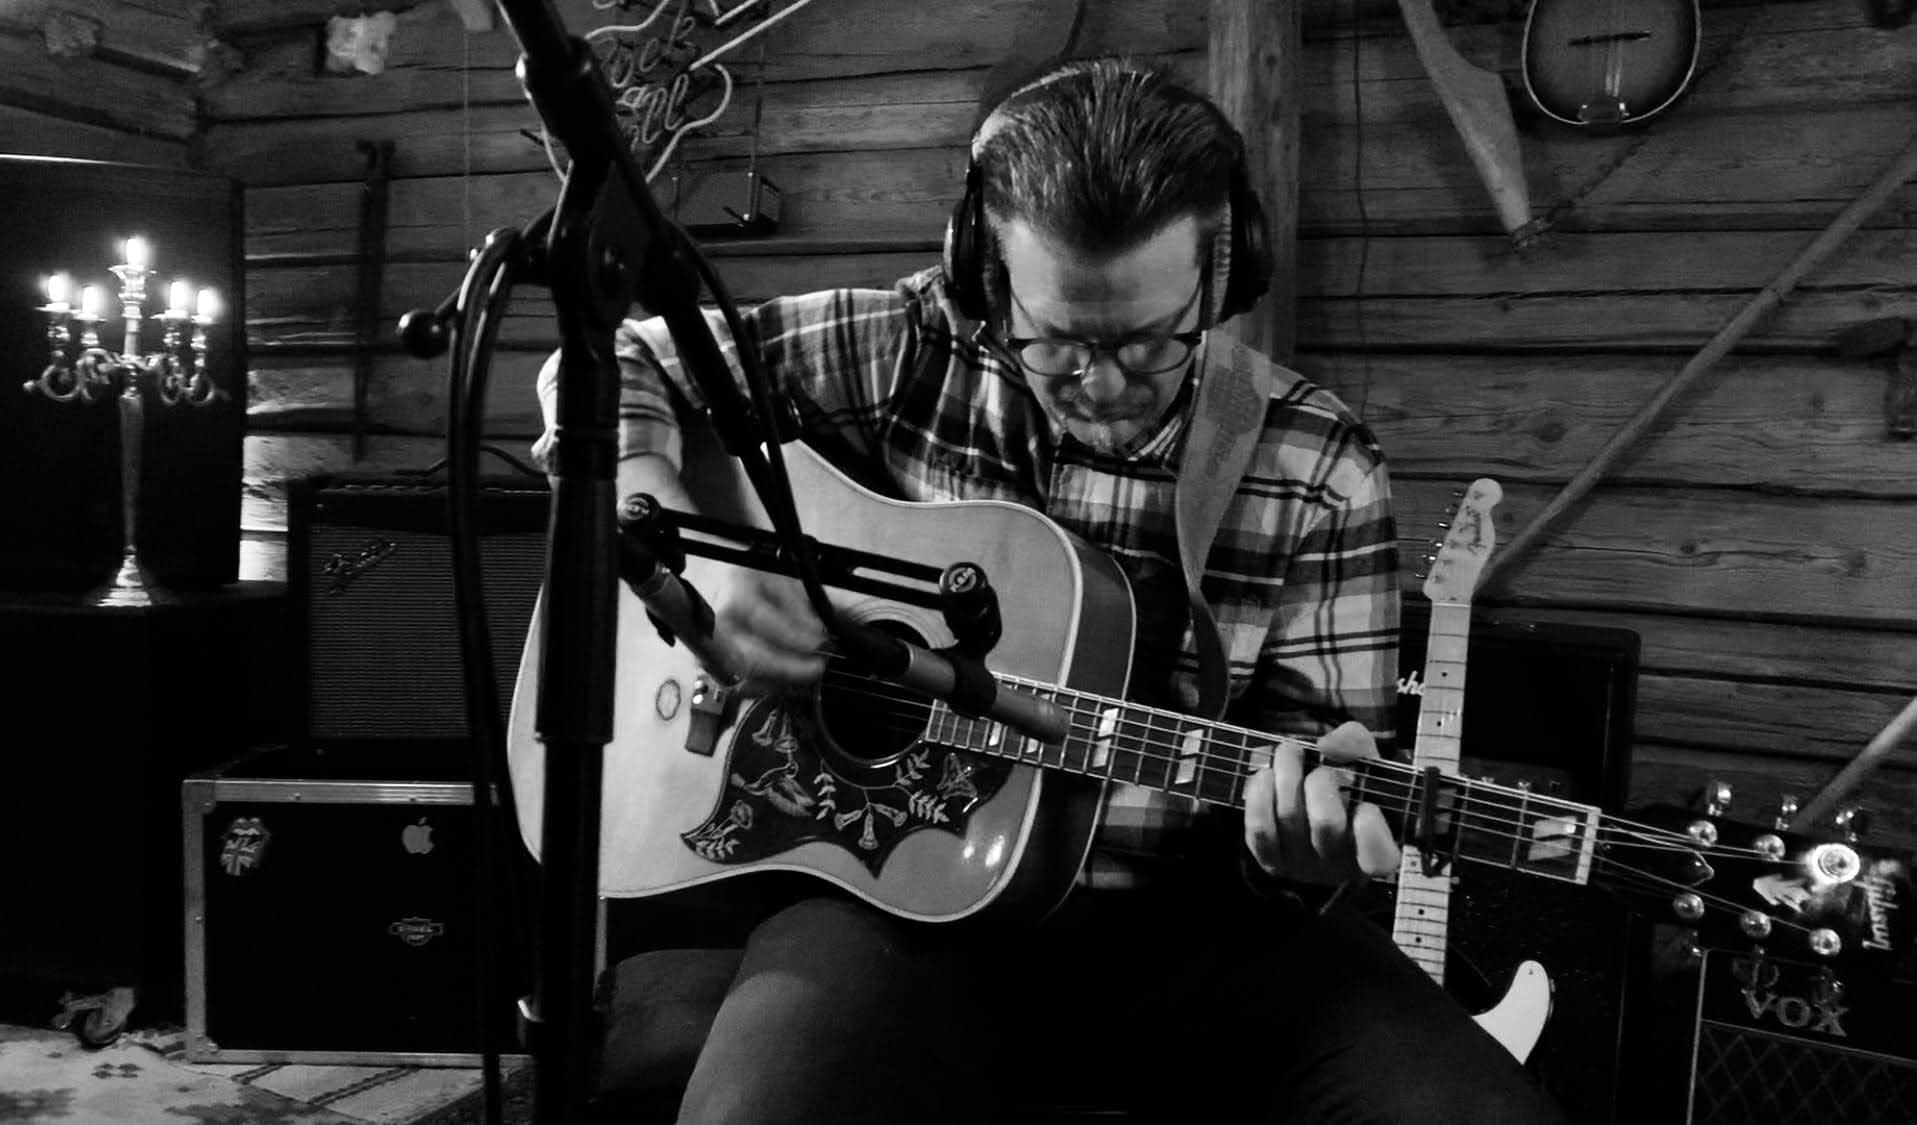 Studio pick of Tailor Hill Stations guitarist Peter Gunnebro records acoustic guitar on the song A Kid On The Street.